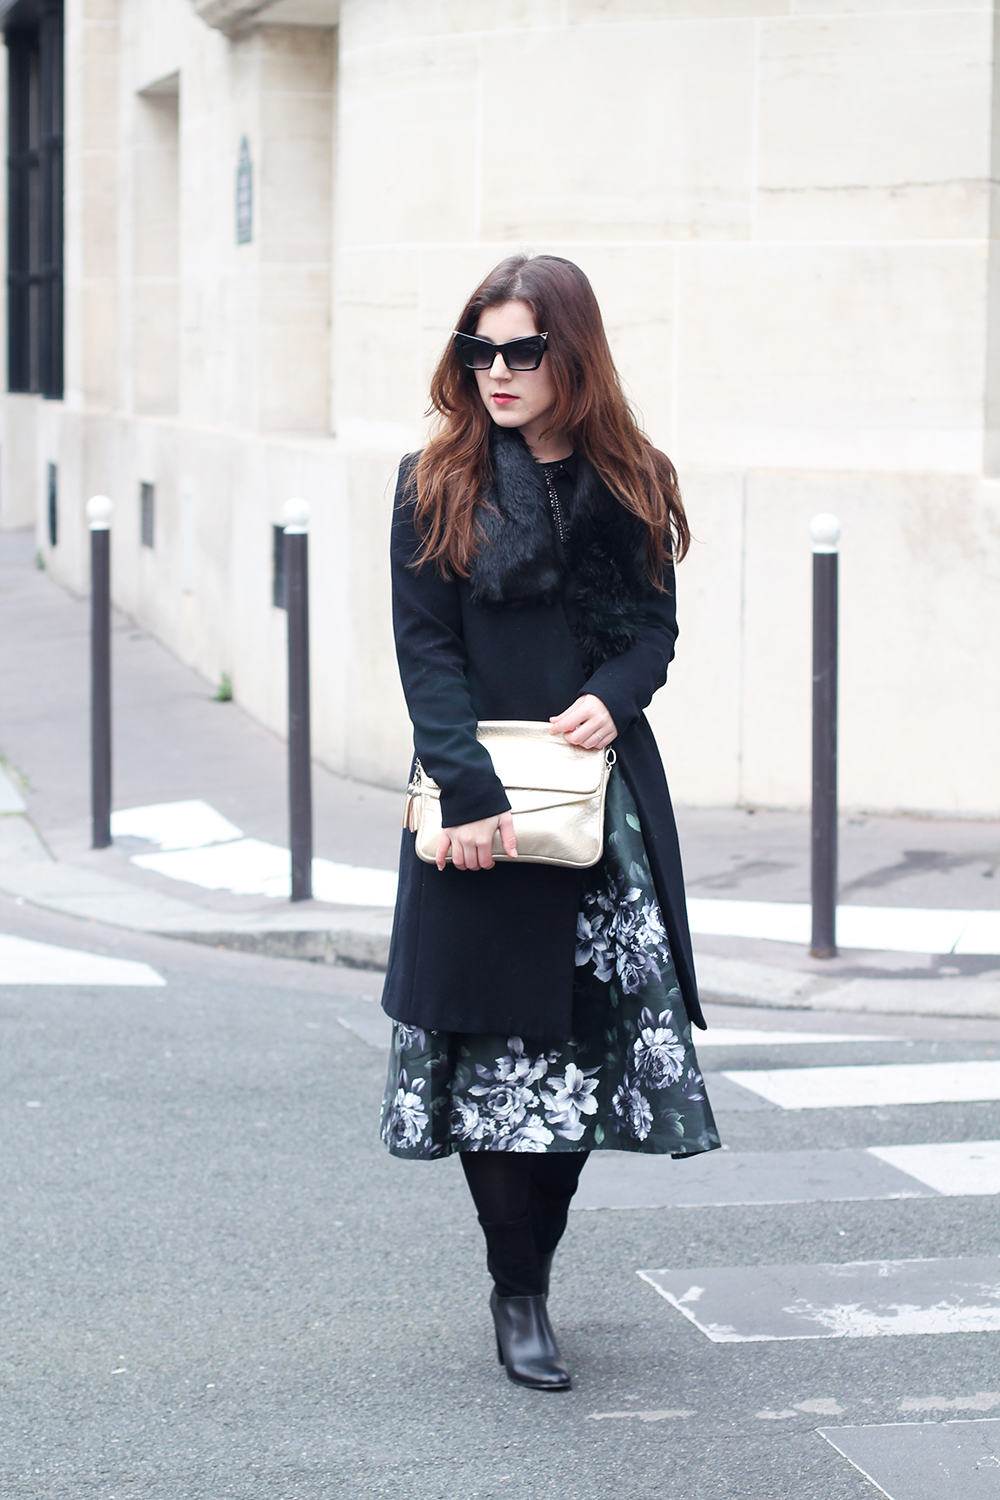 Floral skirt and fur